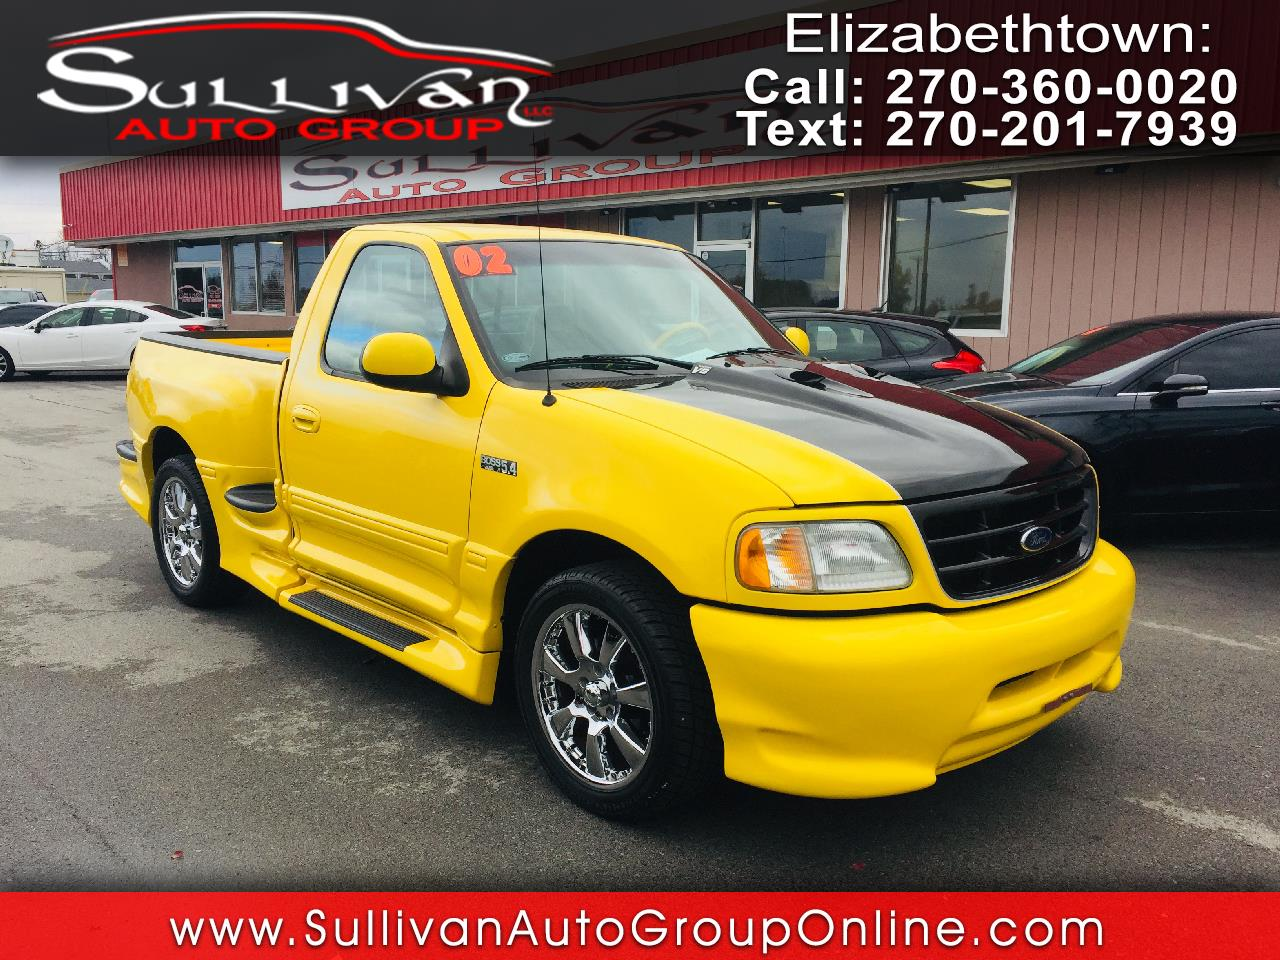 2002 Ford F-150 BOSS 5.4 Limited Edition